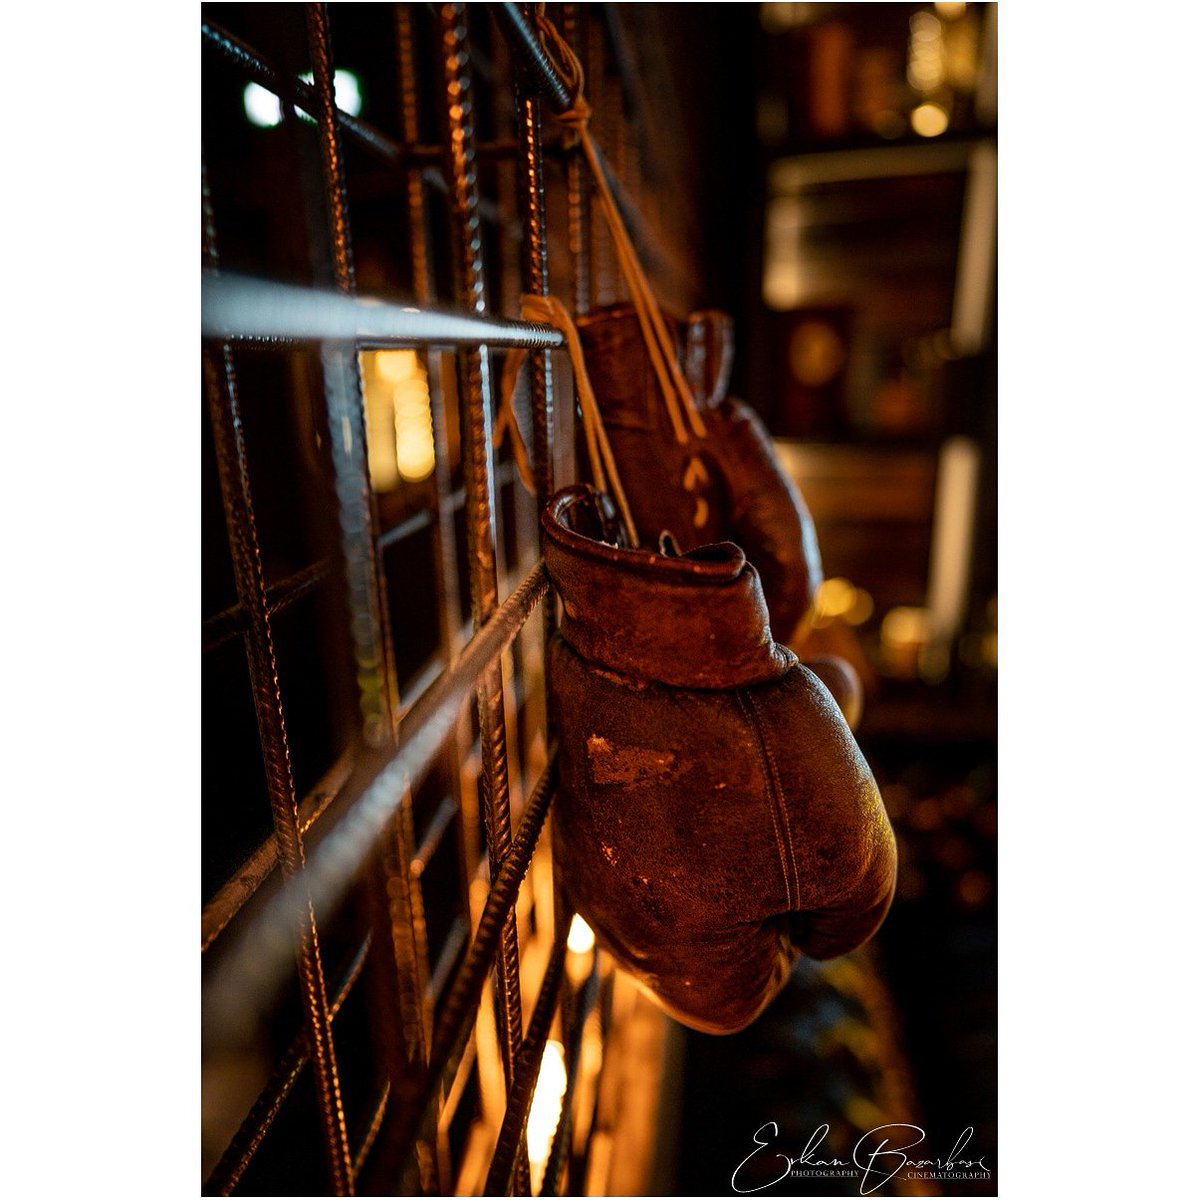 PHOTO BY // @33exposure I loved the way these gloves were hanging in this crazy strong nostalgic environment.  #urban_shutter #streetizm #Moscow #russia #streetphotography #nightfotograph #russia_pics #russia_fotolovers #москва #москвамойгород #interiordesign #boxing #nostalgicpic.twitter.com/MWR23J7V00